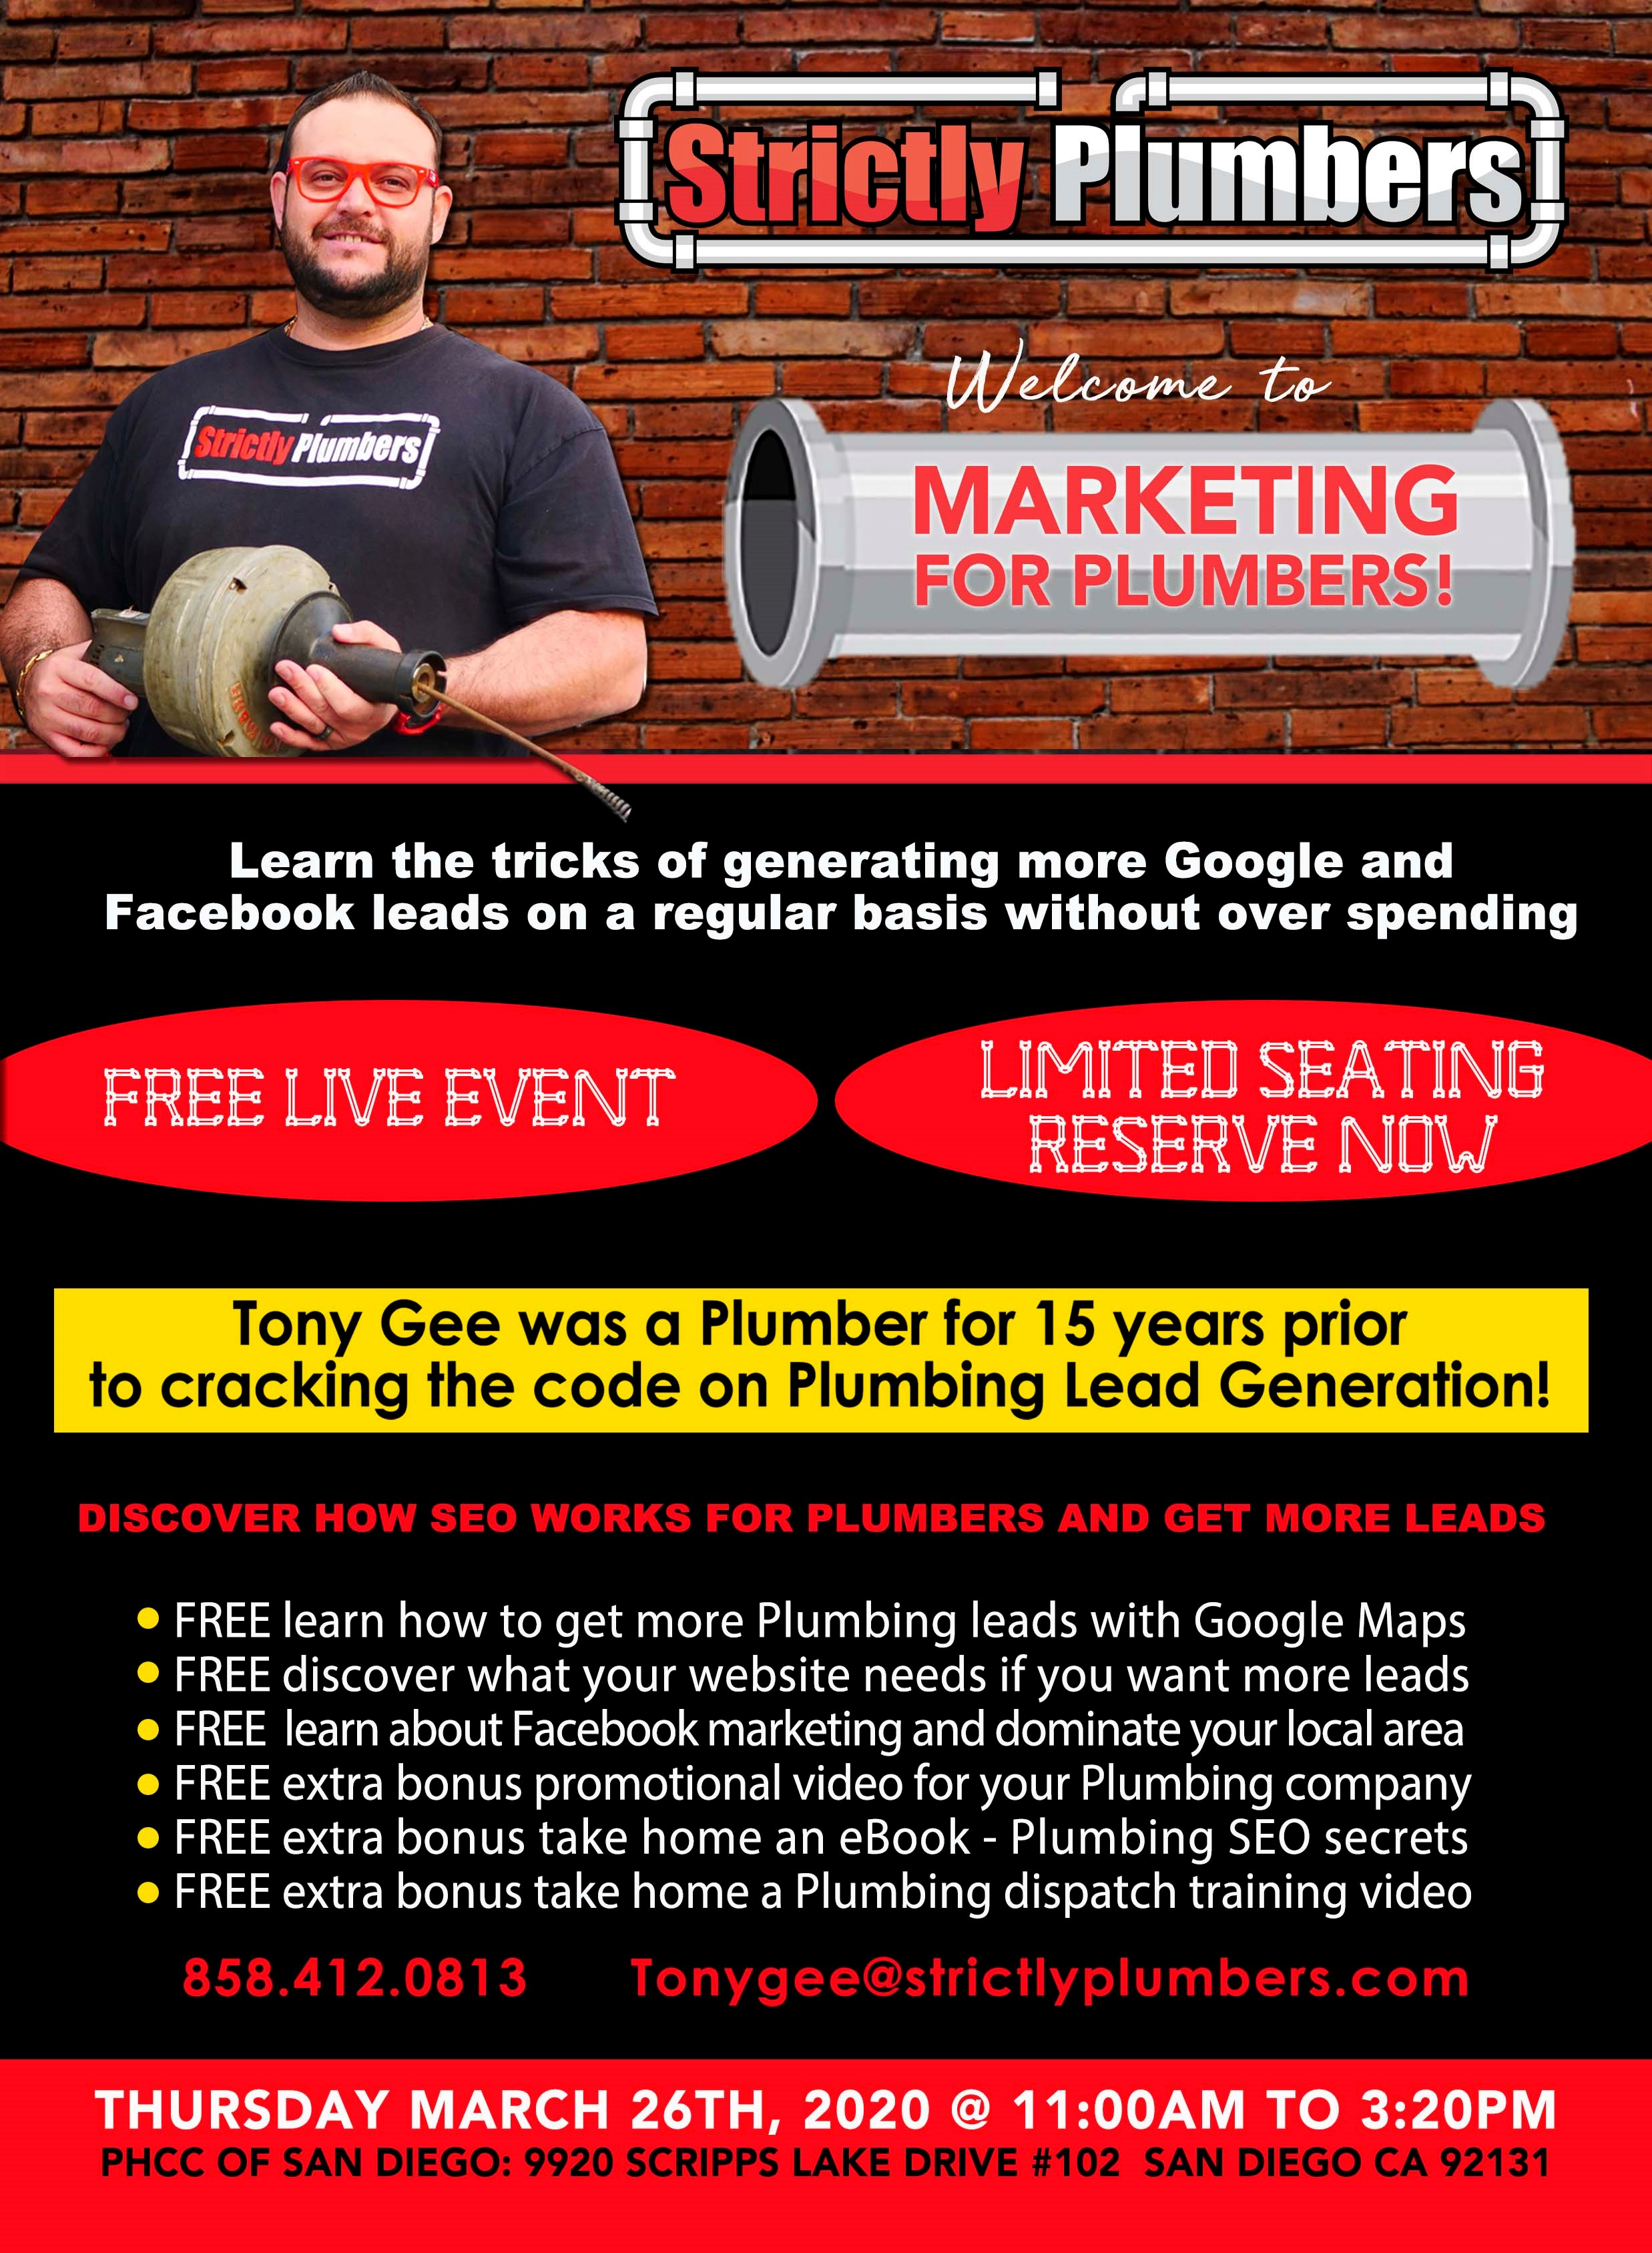 Lead Generation for Plumbers by Strictly Plumbers March 2020